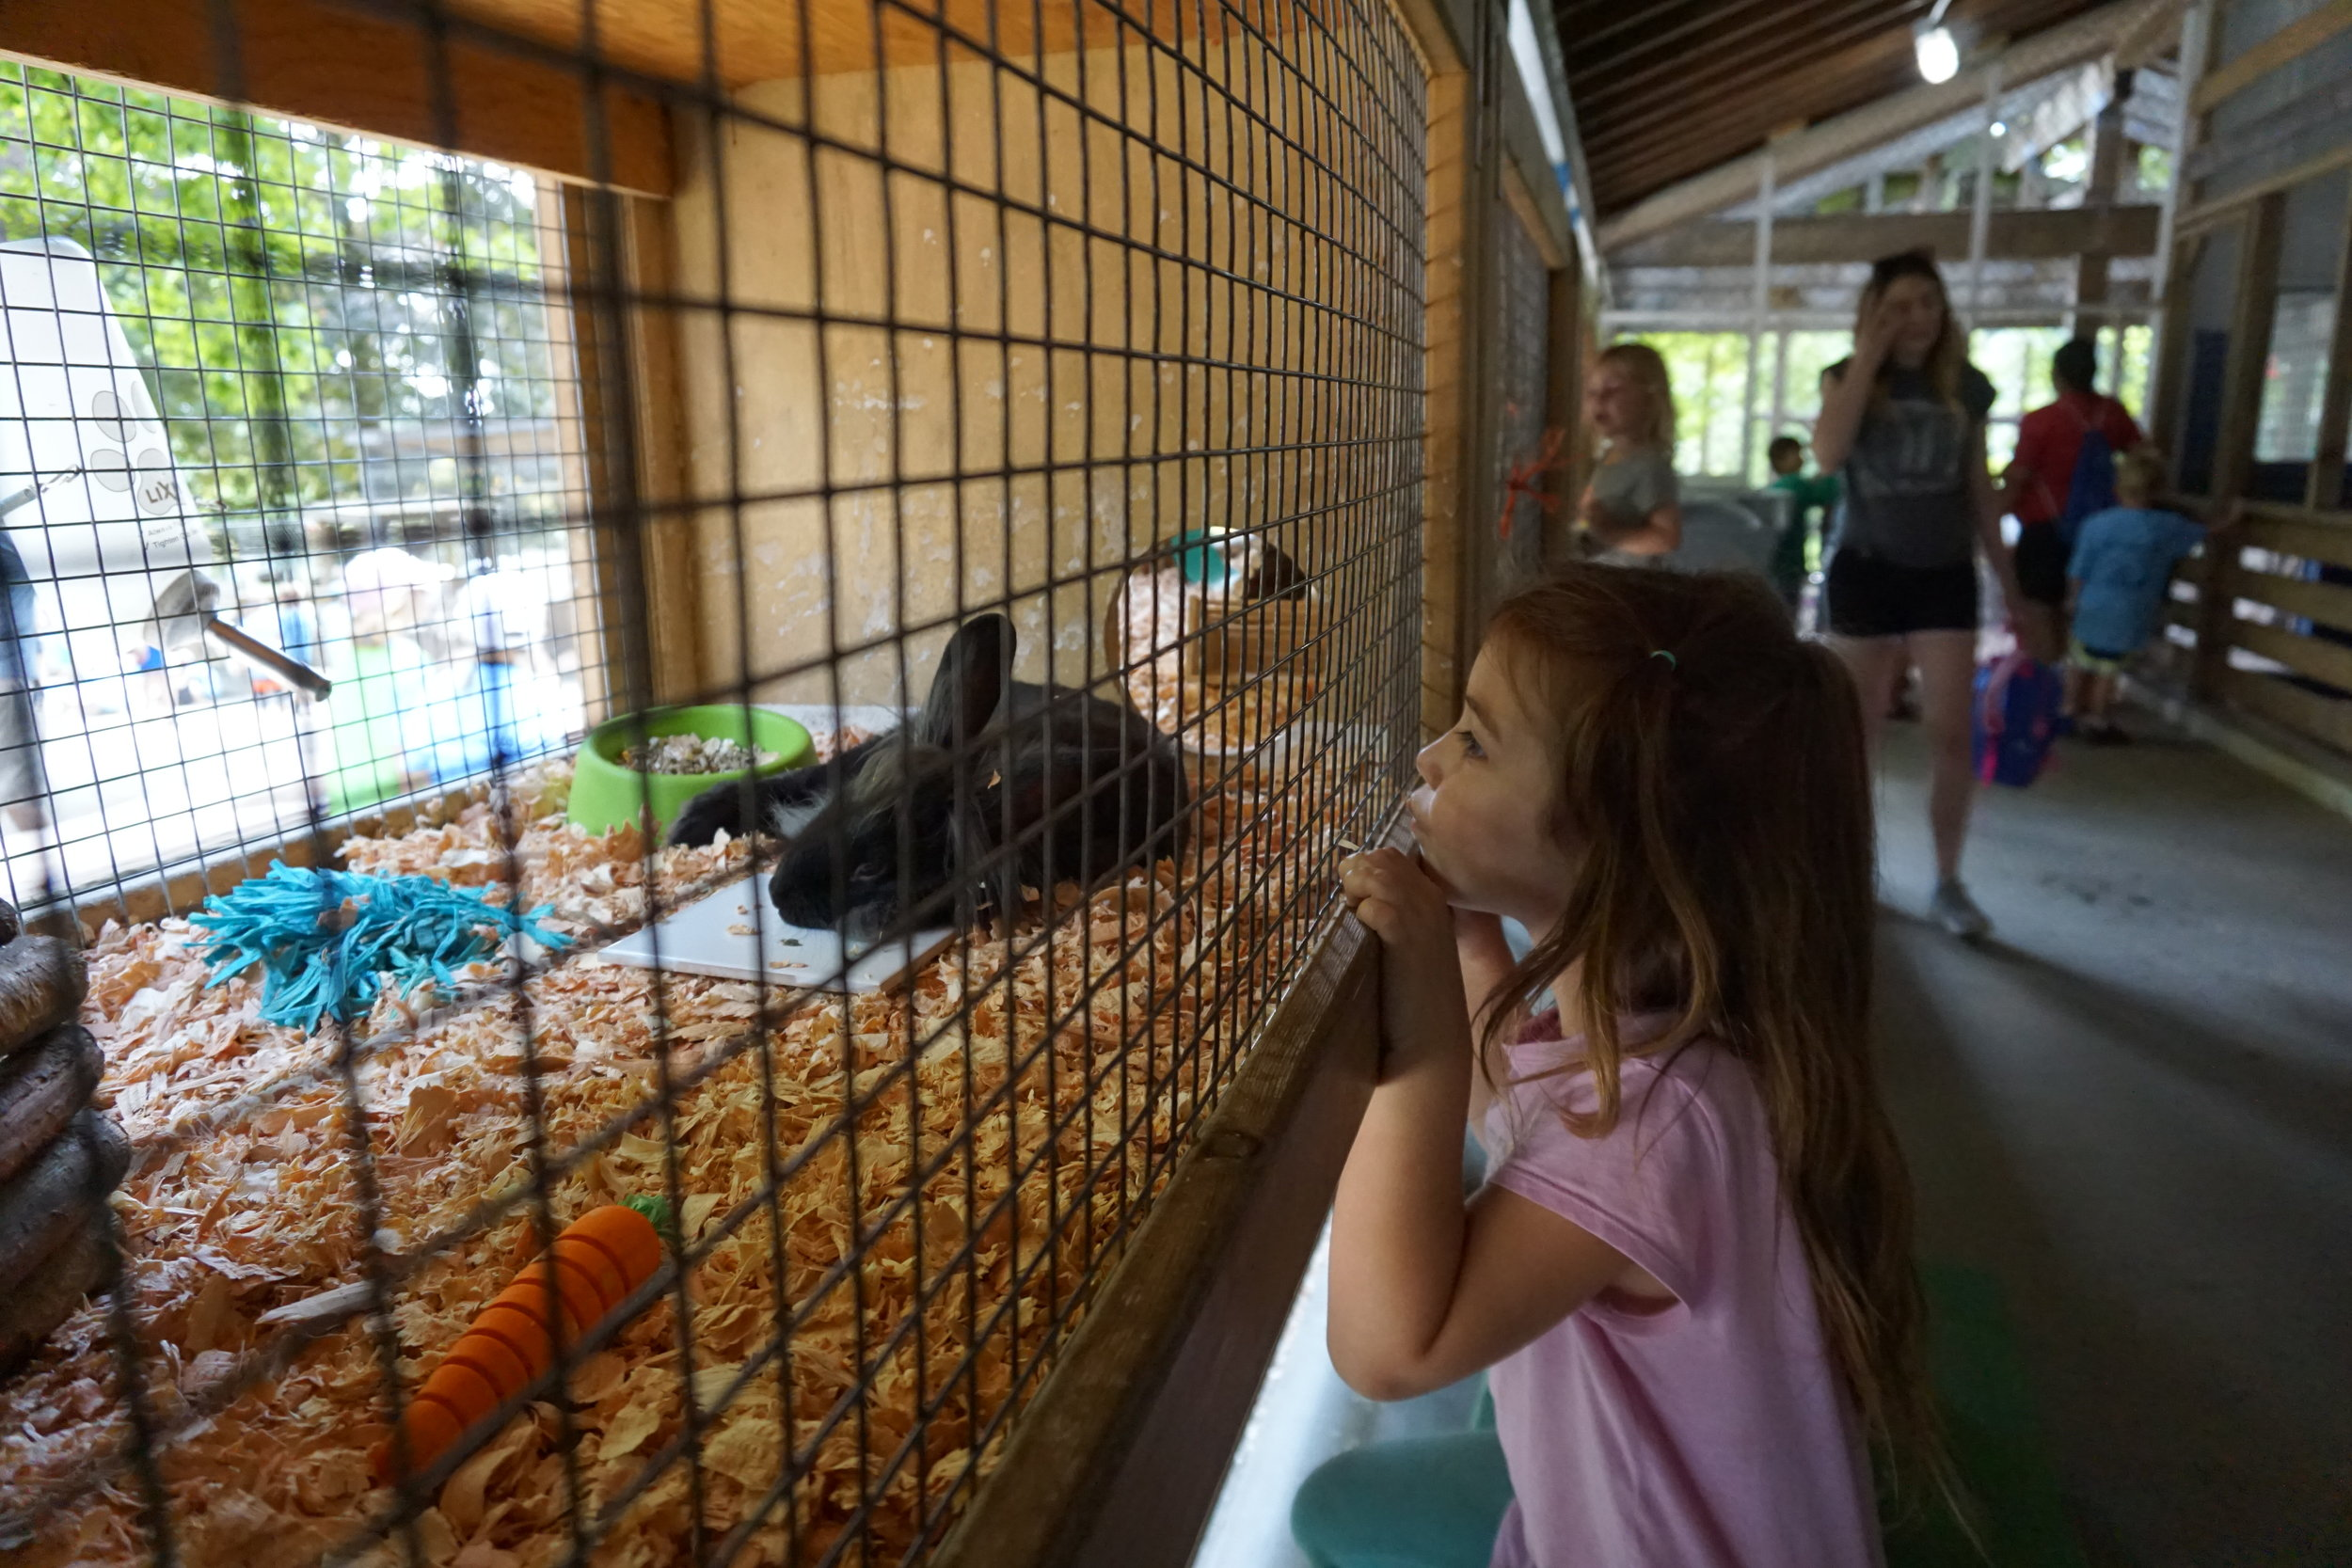 Do you carrot all about rabbits? Having fun at Queens Park Petting Zoo!